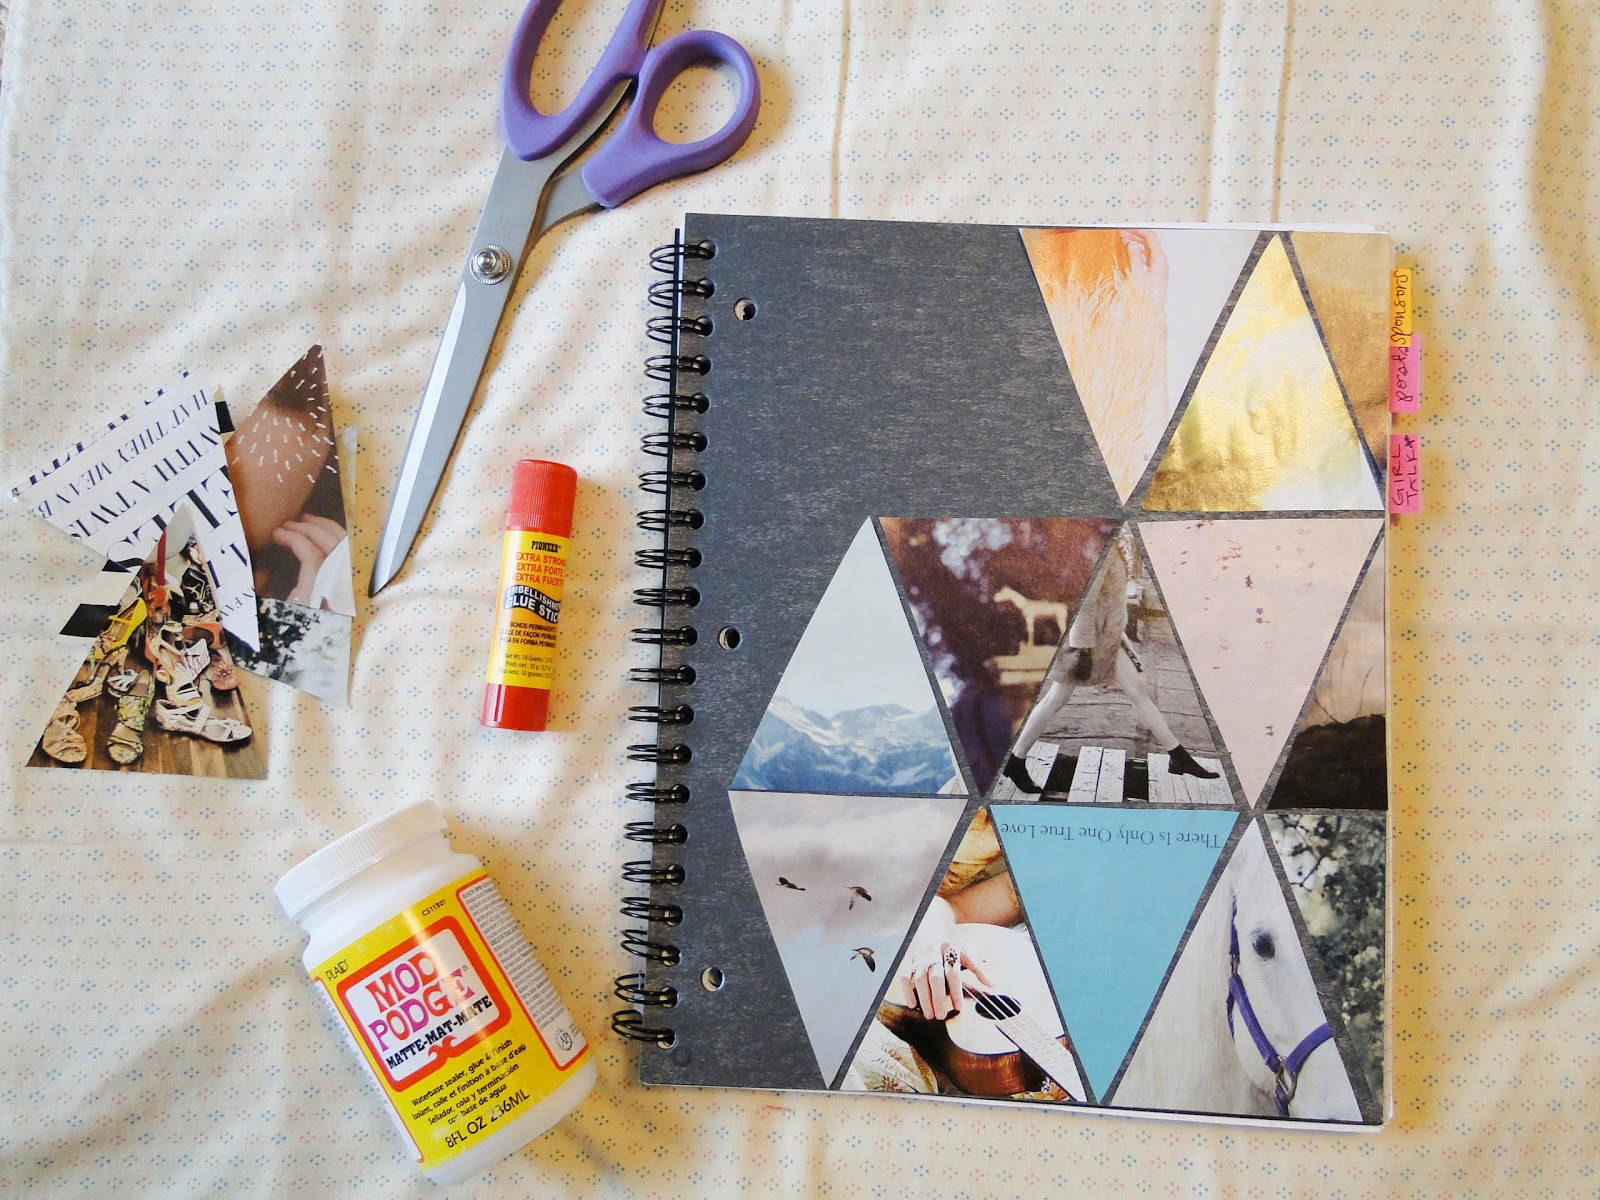 Creative Book Cover Diy : Pie n the sky triangle love diy